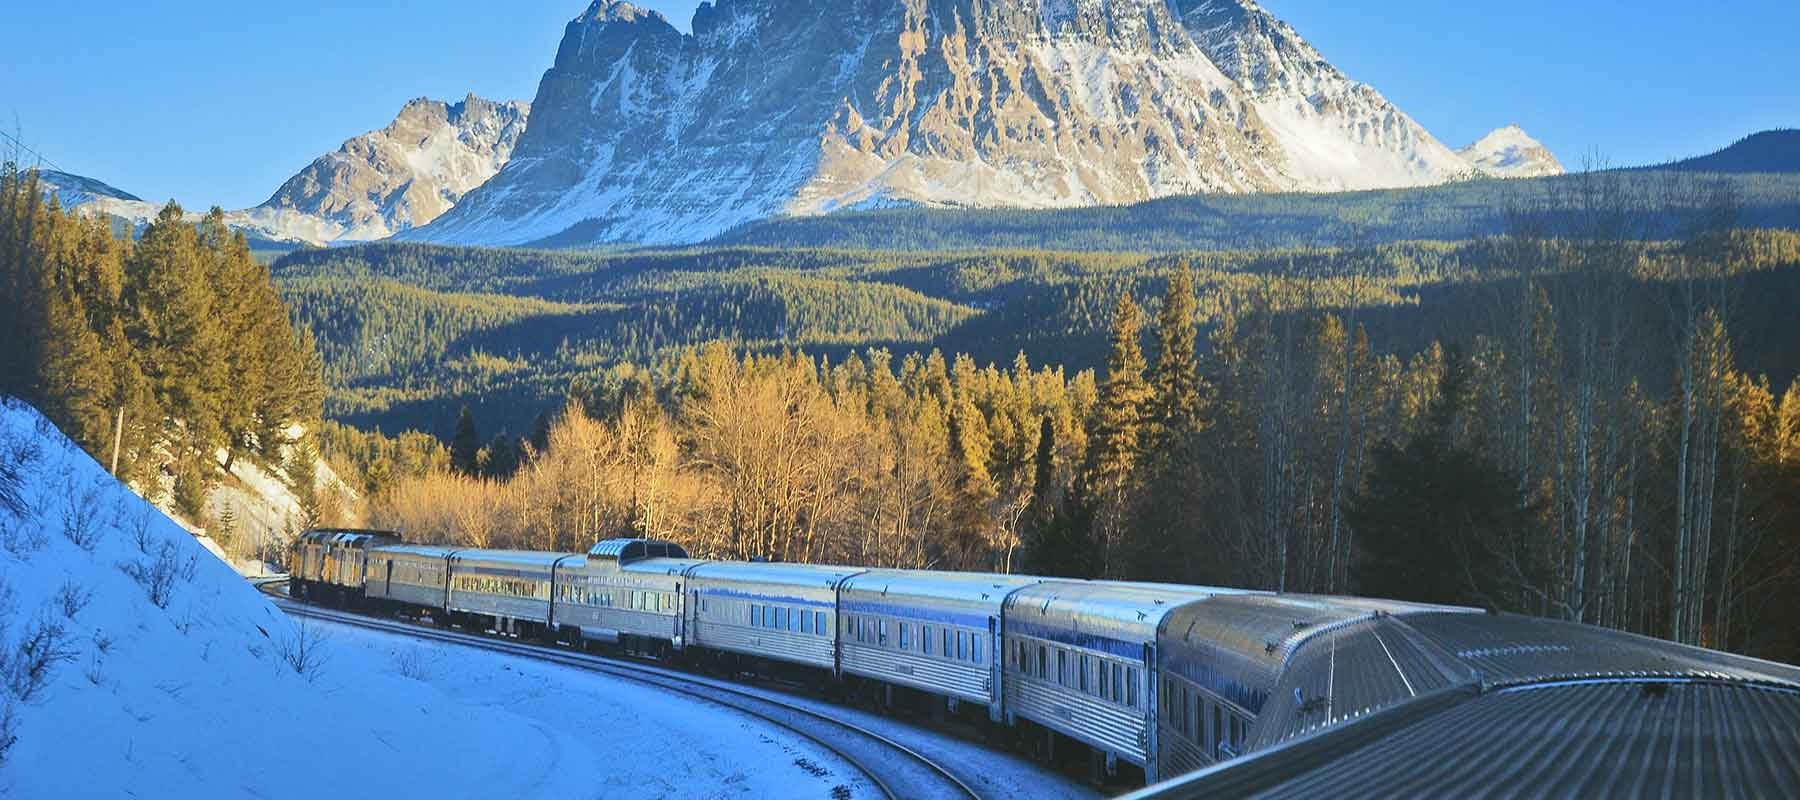 Canada By Design Vacations | Snow Train to the Rockies